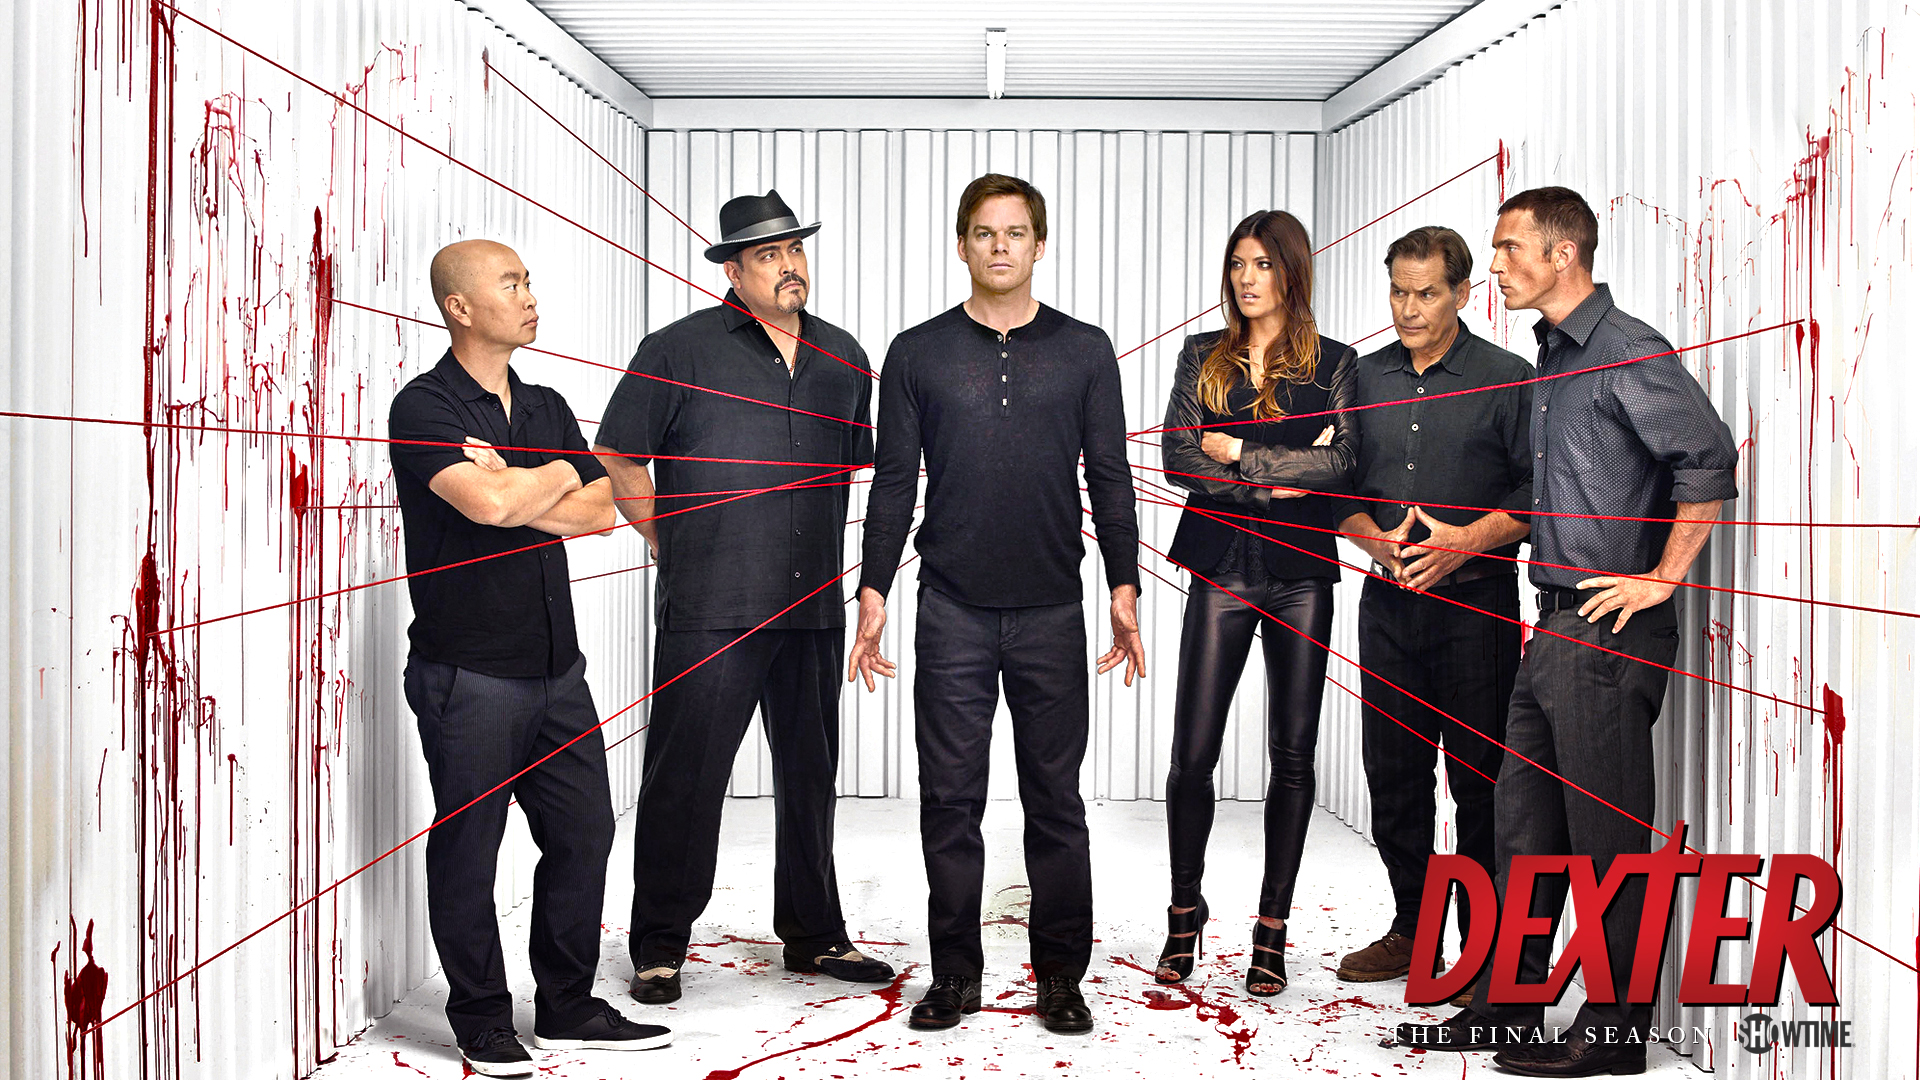 dexter Season 8 wallpaper HD by iNicKeoN